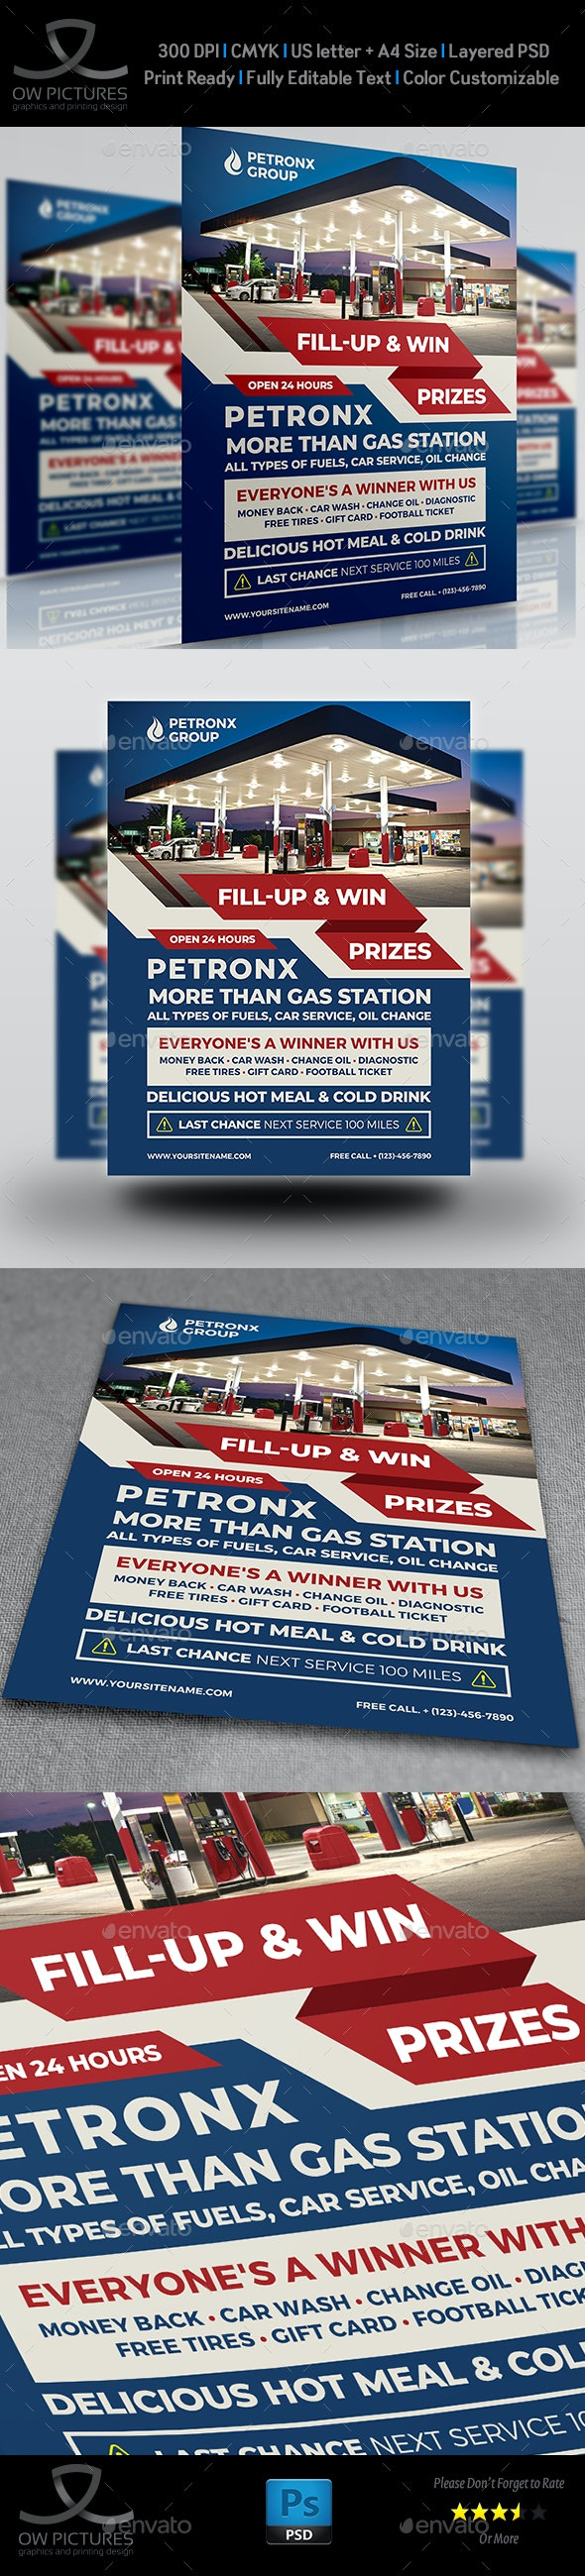 Gas Station Flyer Template Vol.4 - Flyers Print Templates